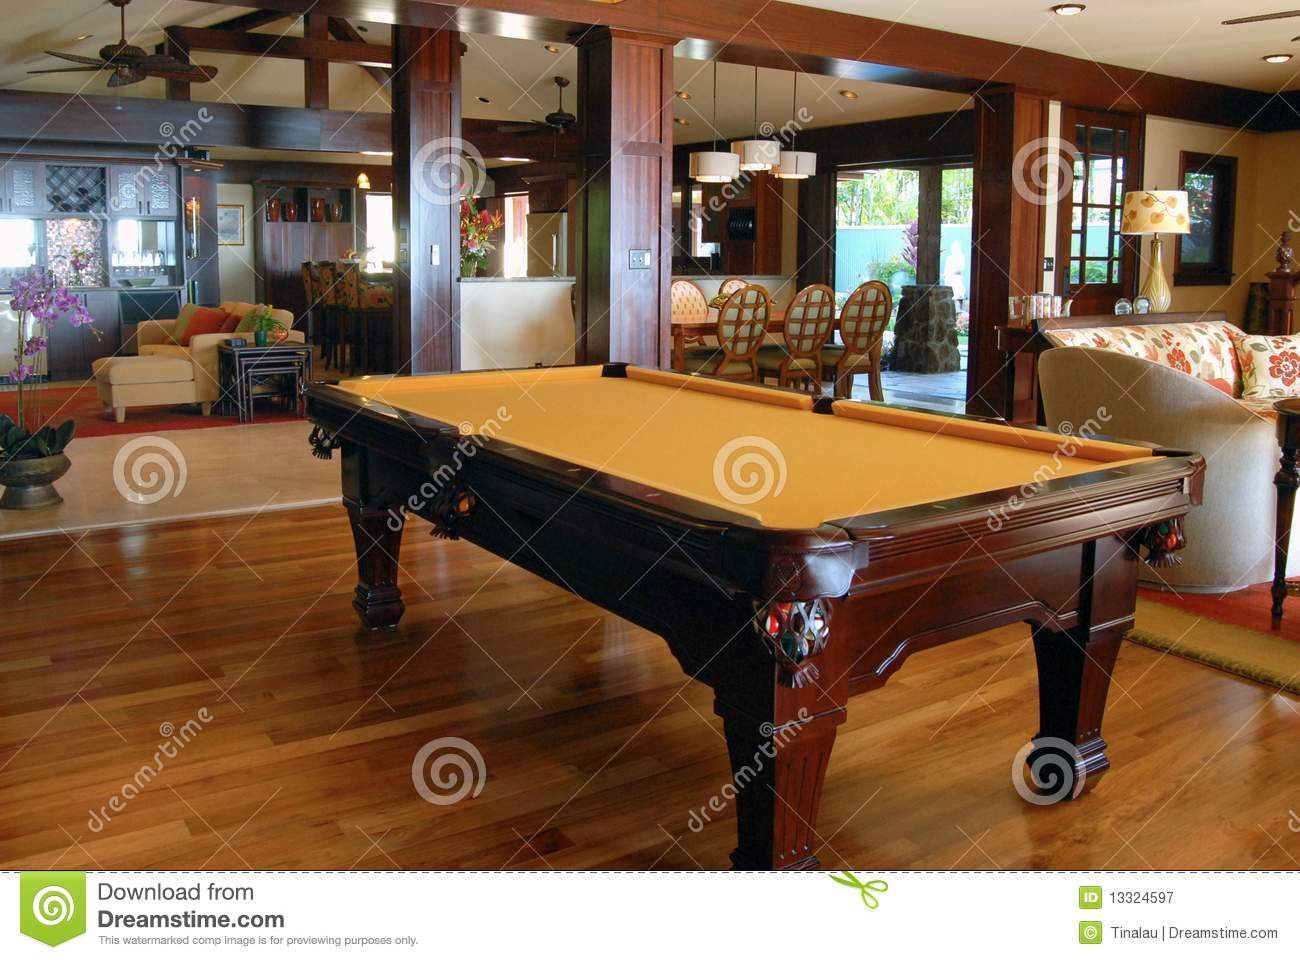 pool table in the living room royalty free stock